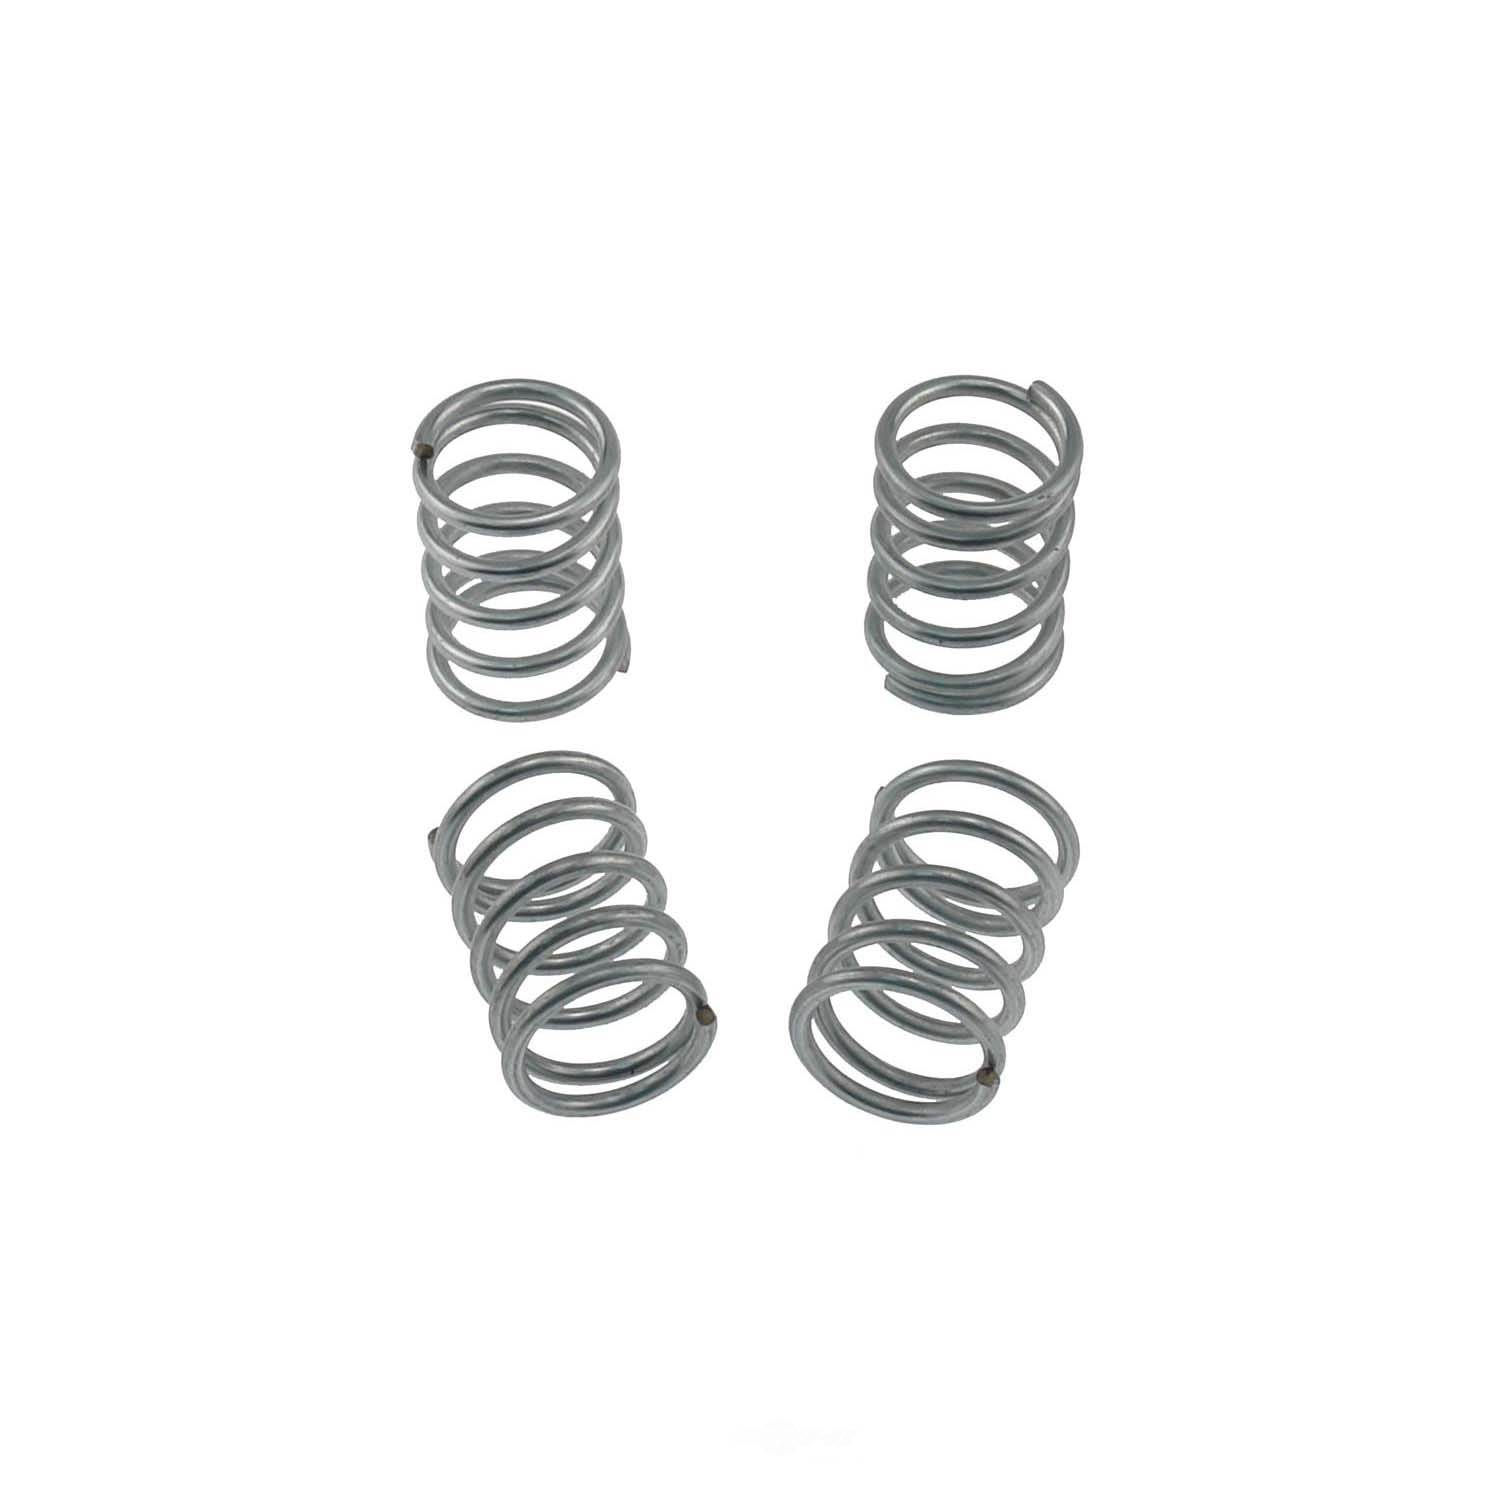 CARLSON QUALITY BRAKE PARTS - Drum Brake Hold Down Spring - CRL H1190-2